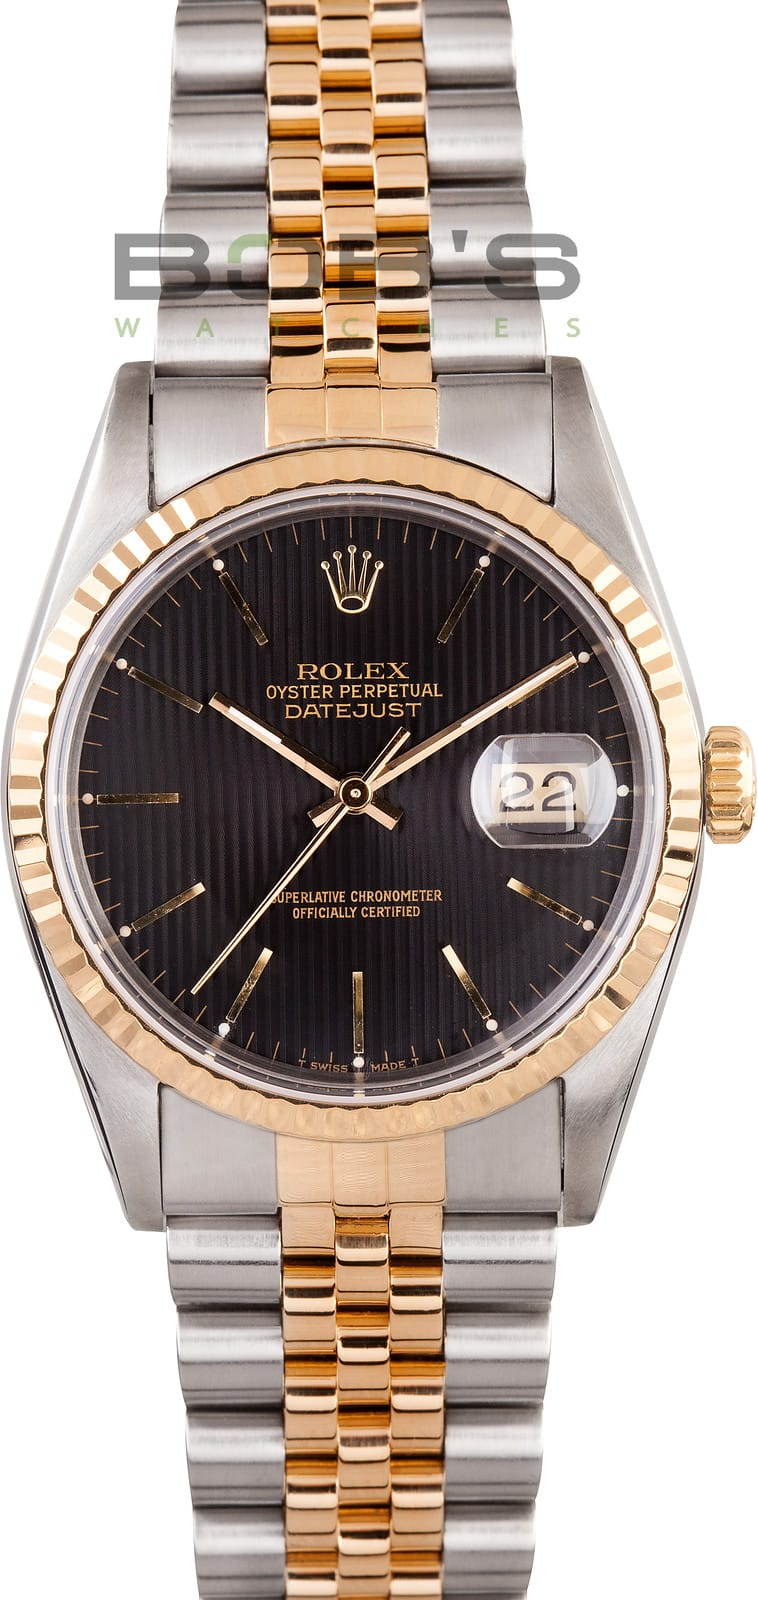 Used Rolex Daytona >> Rolex DateJust 16233 at Bob's Watches. Save on 100% Rolex